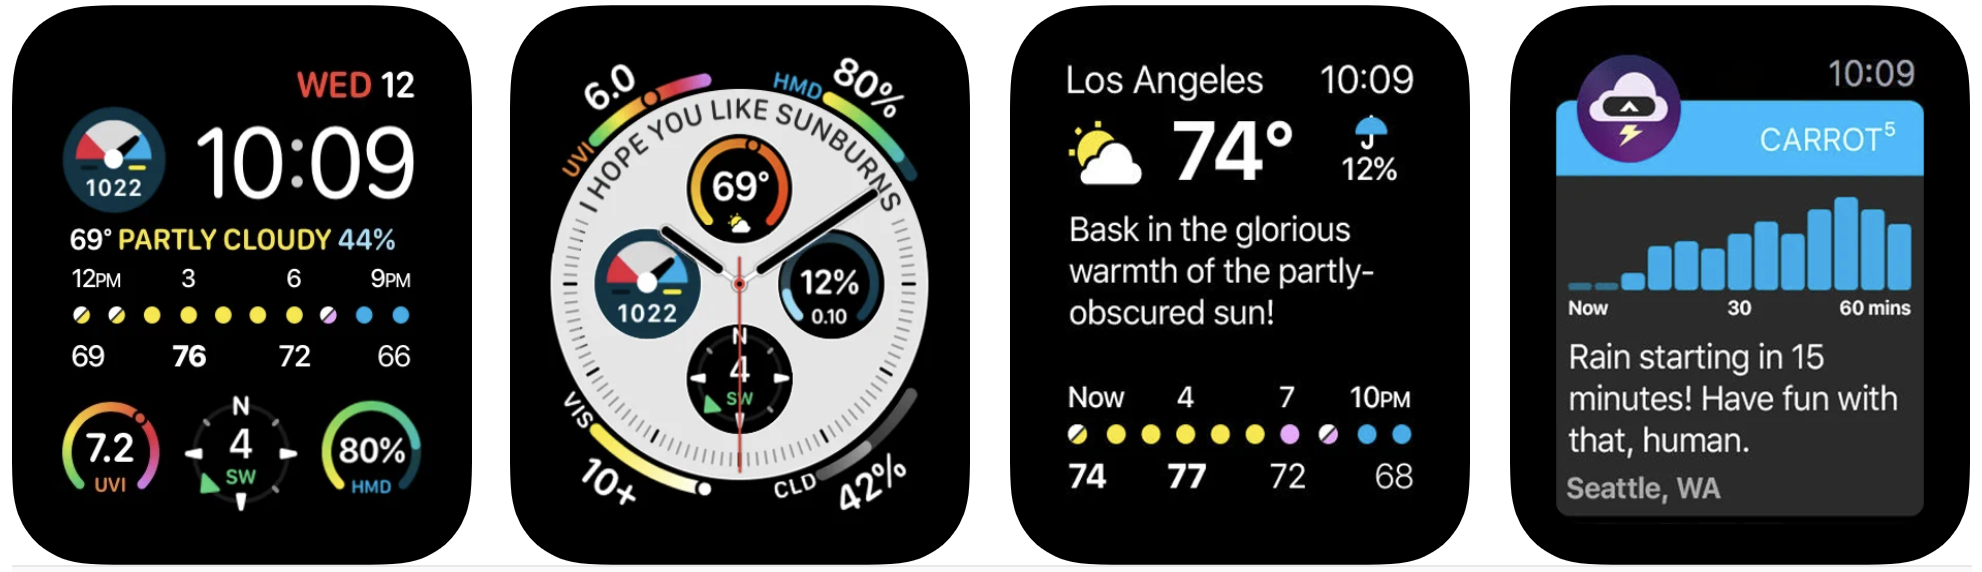 best apple watch apps carrot weather app